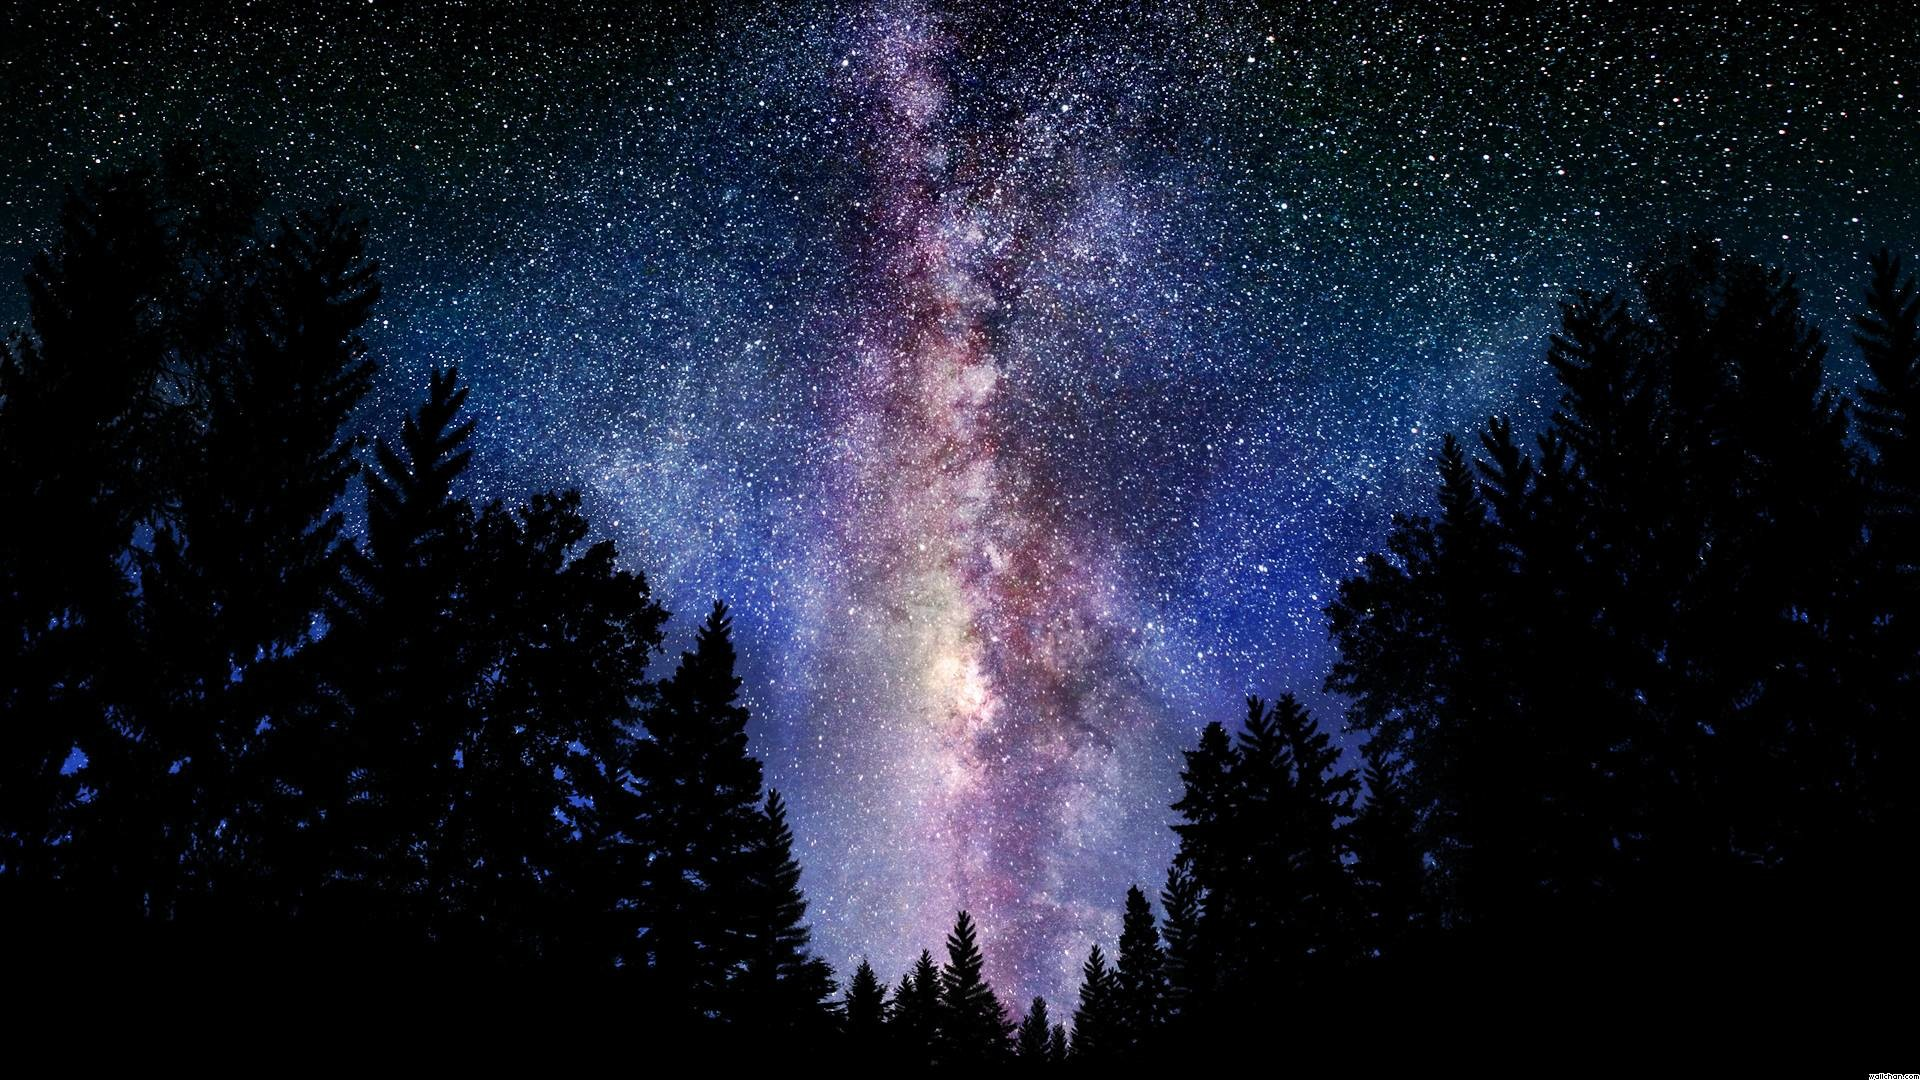 Milky Way Wallpaper 40 60457 Images HD Wallpapers| Wallpapers .